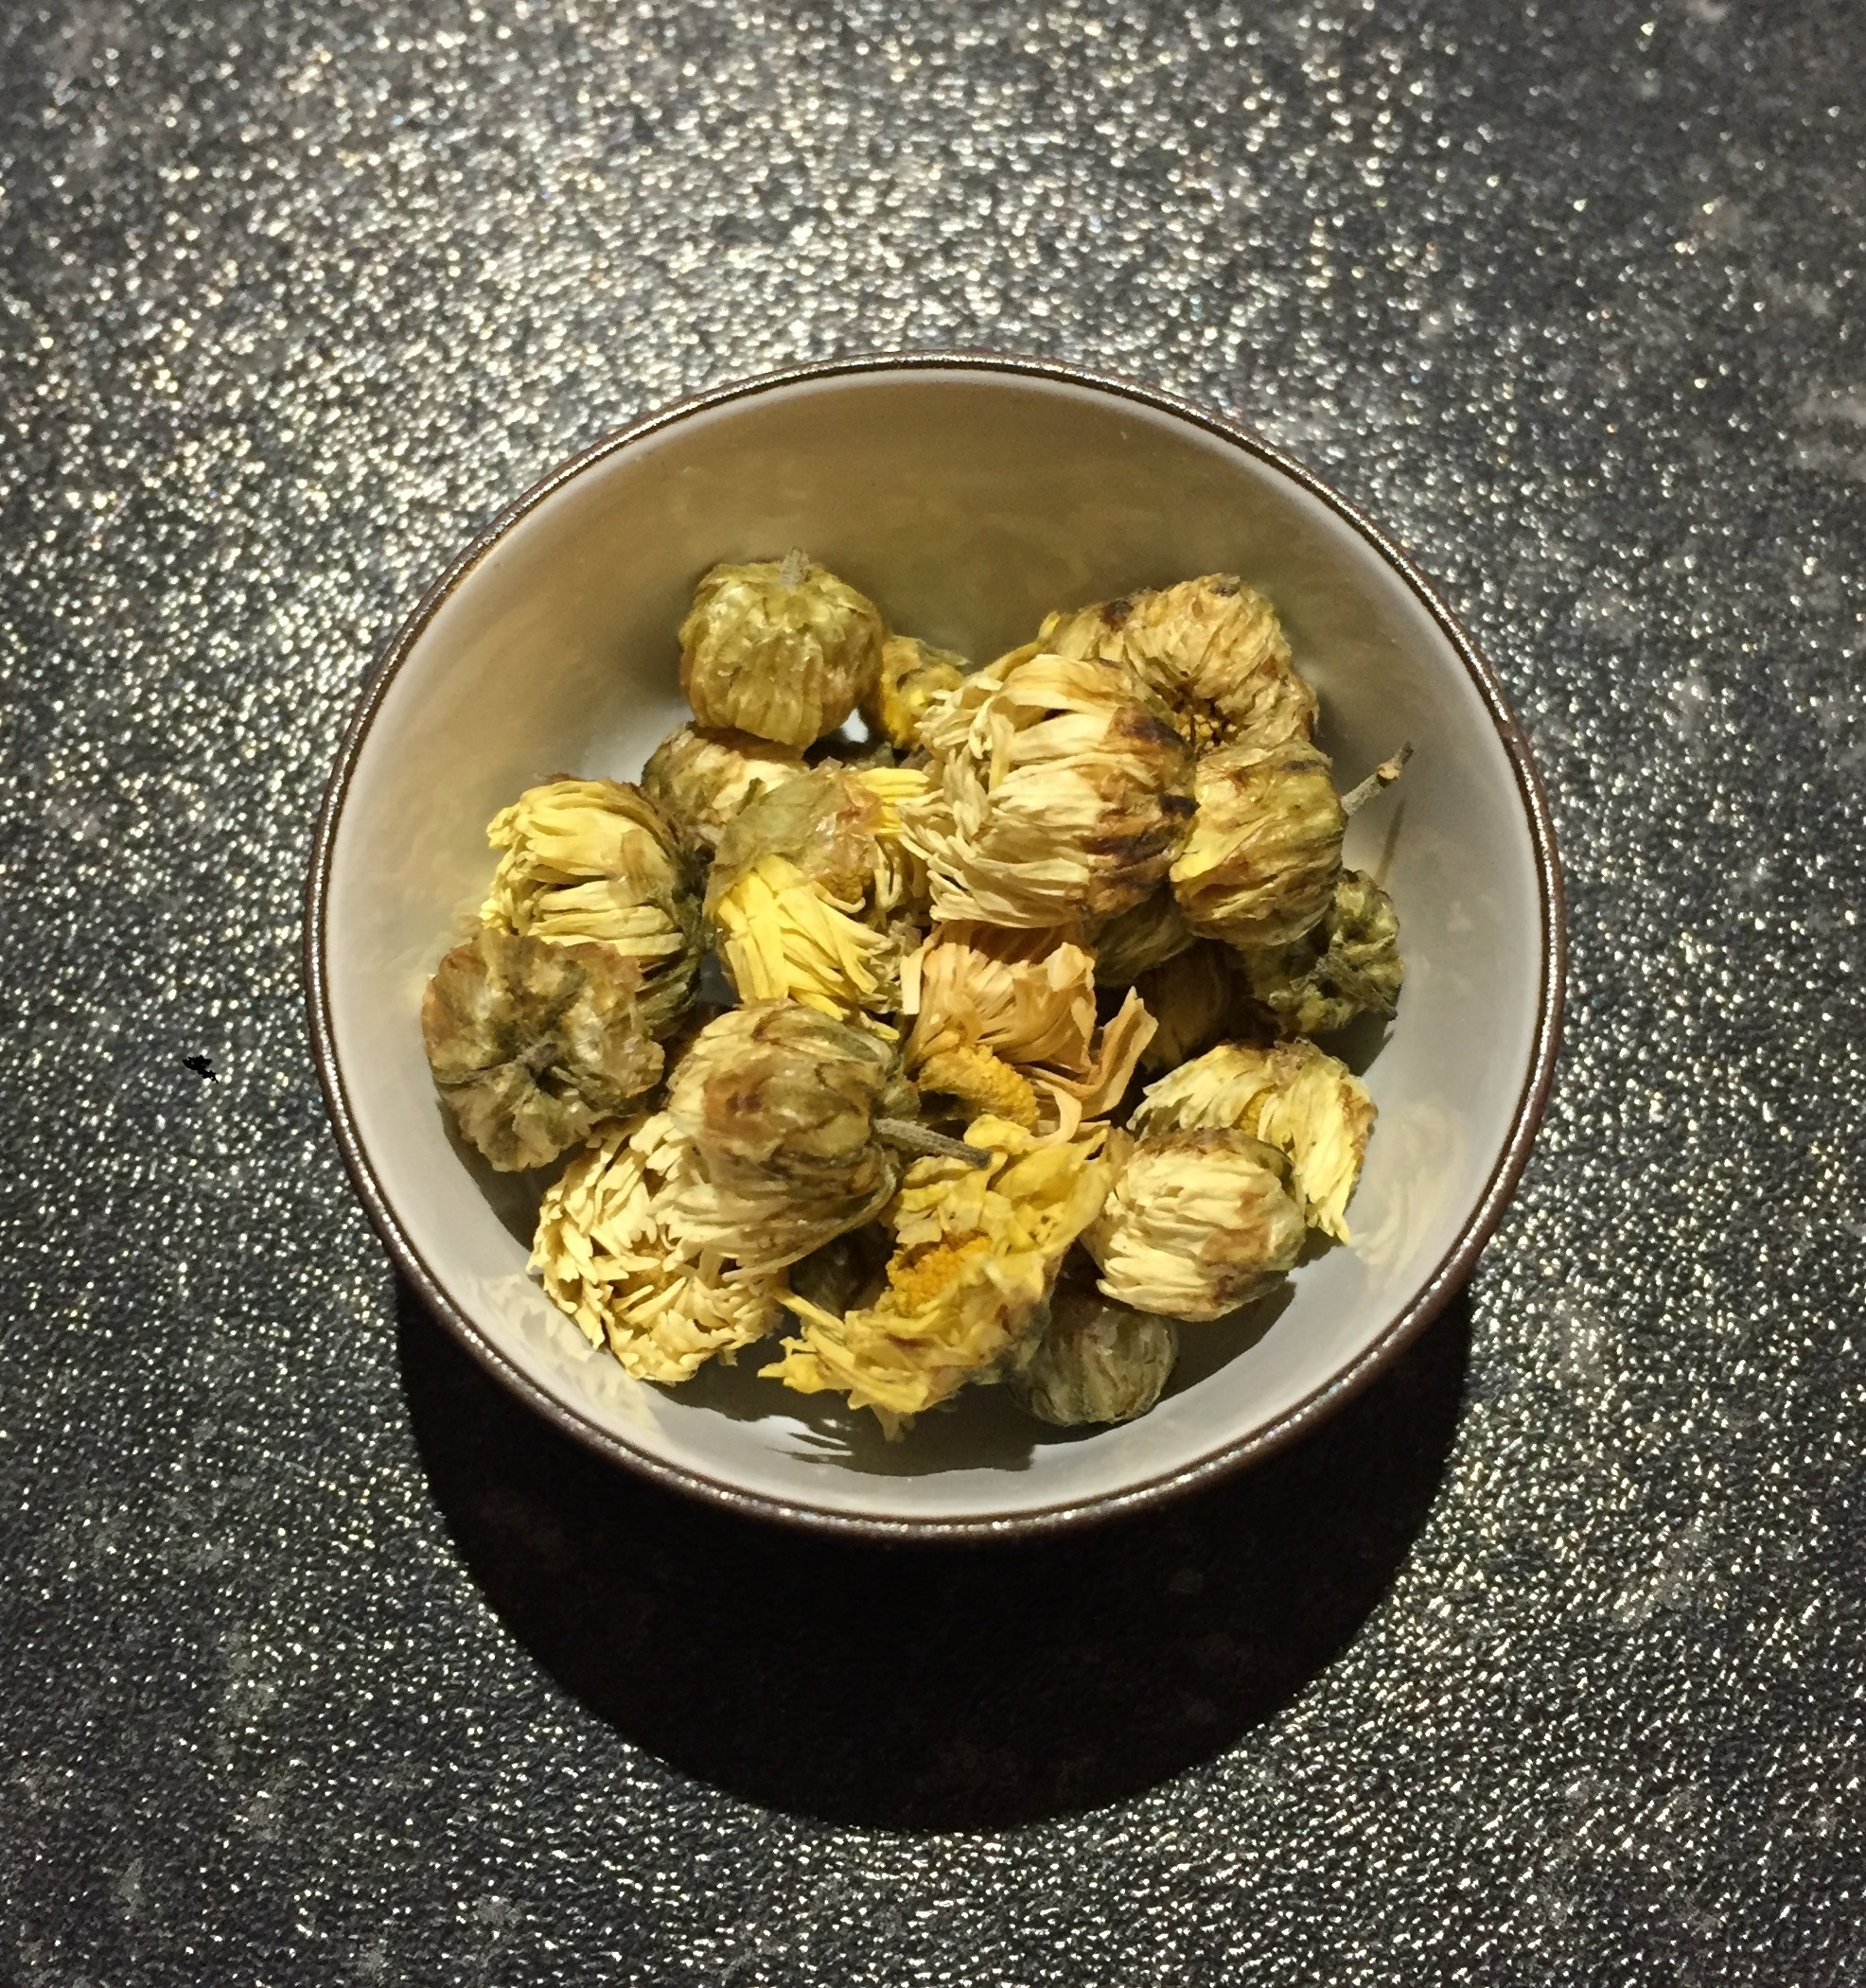 chrysanthemum-tea-dry.jpg